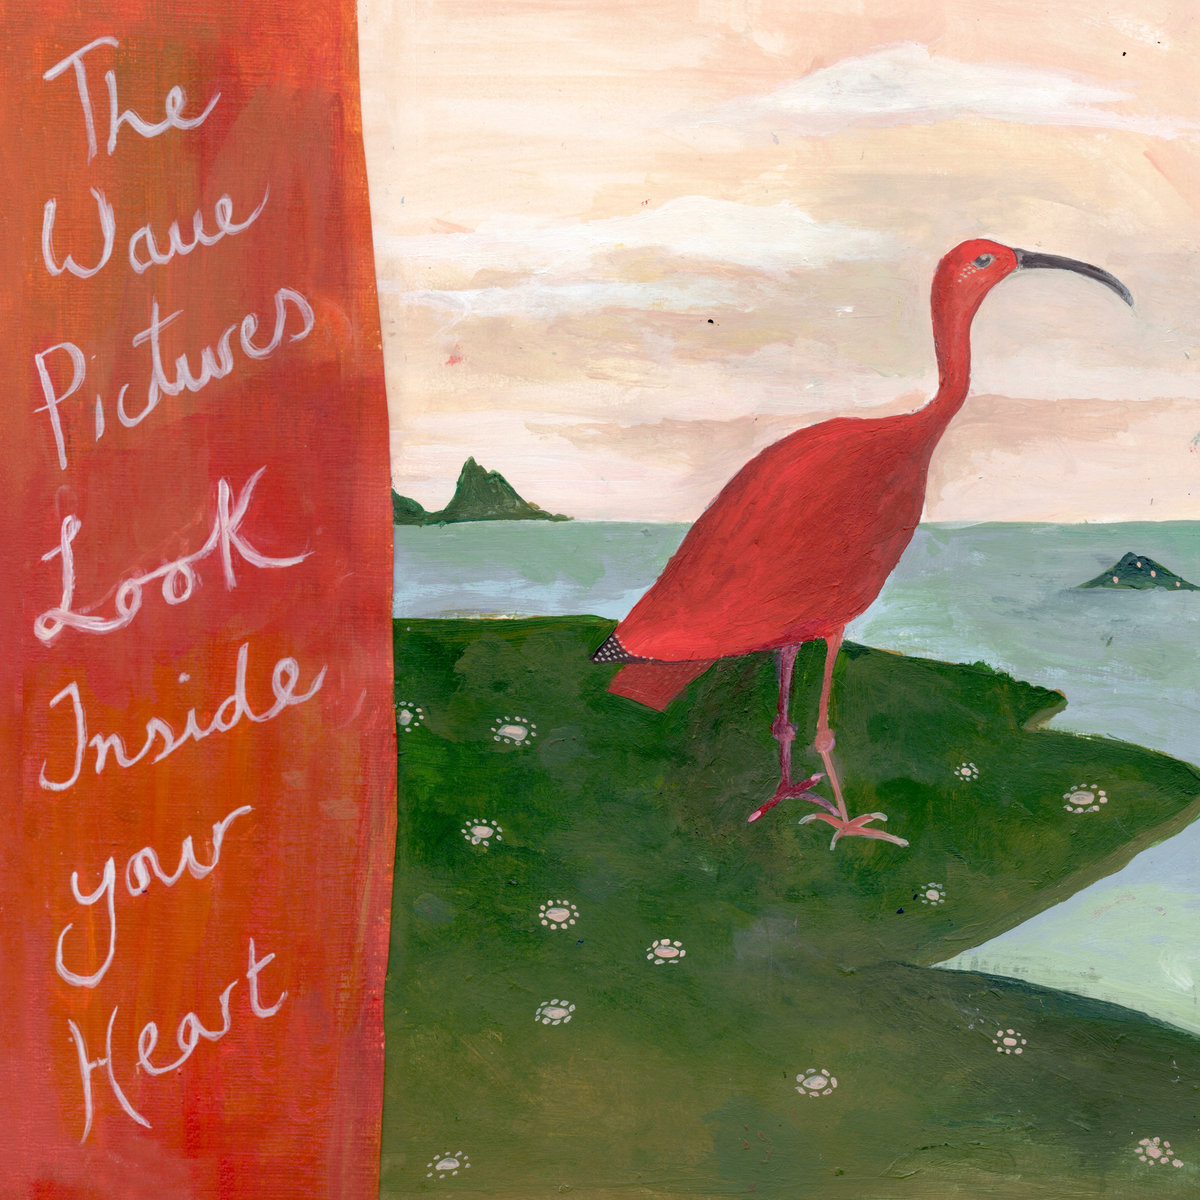 The Wave Pictures – Look Inside Your Heart (Moshi Moshi)